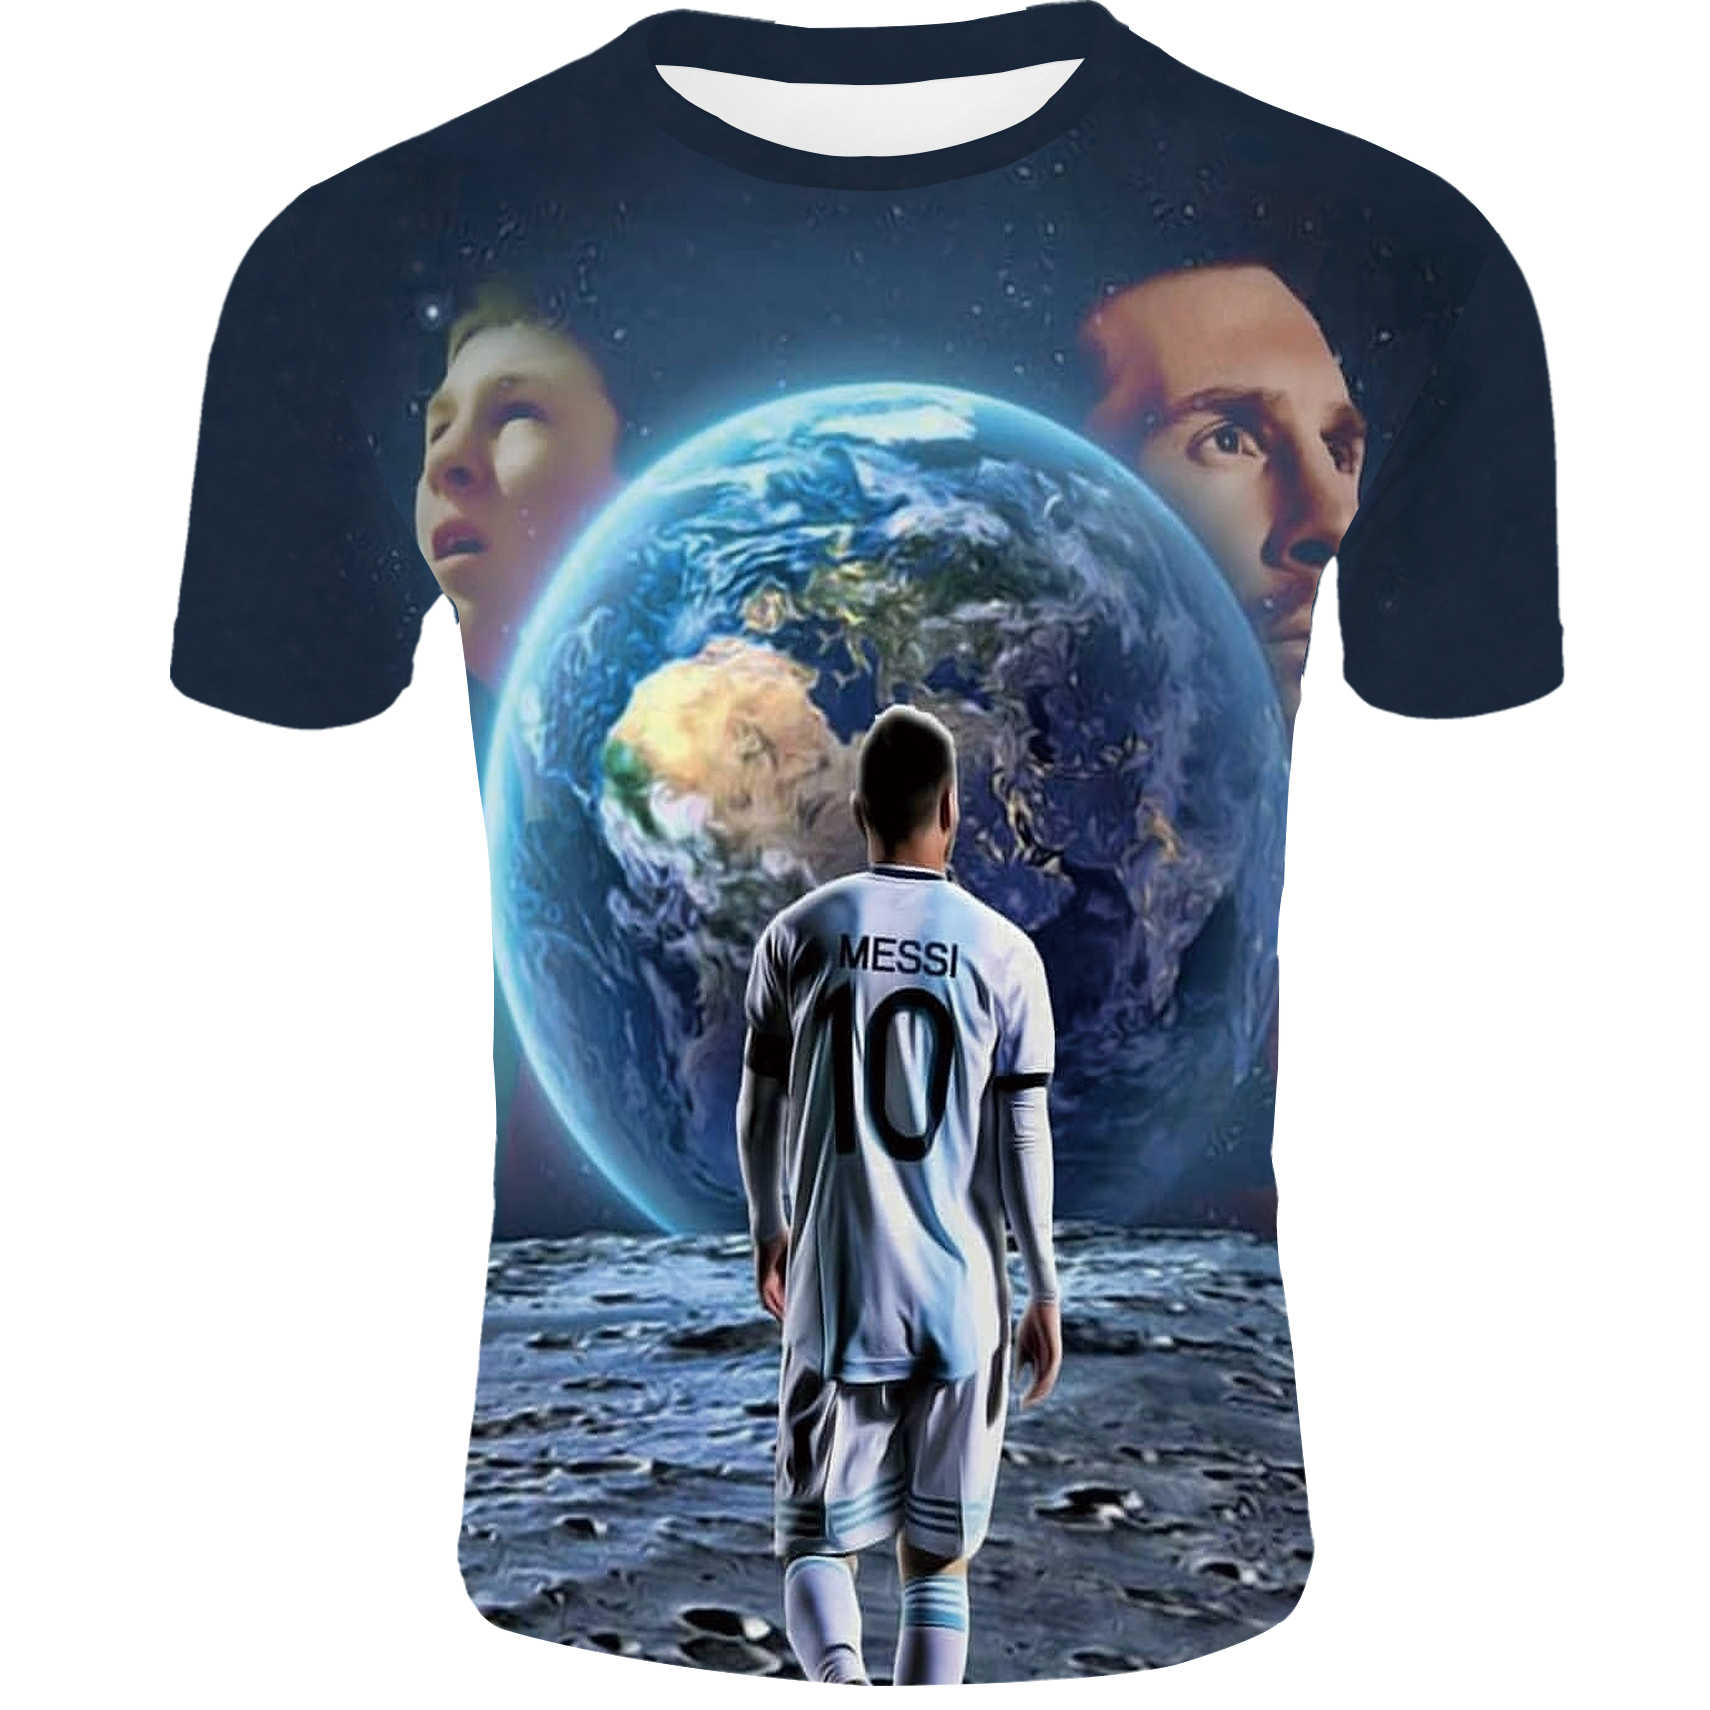 online store 50de4 f24d1 2019 summer new men's / women's T-shirt Messi Barcelona T-shirt jersey 3D  print punk clothing street fashion T-shirt topsXXS-4XL